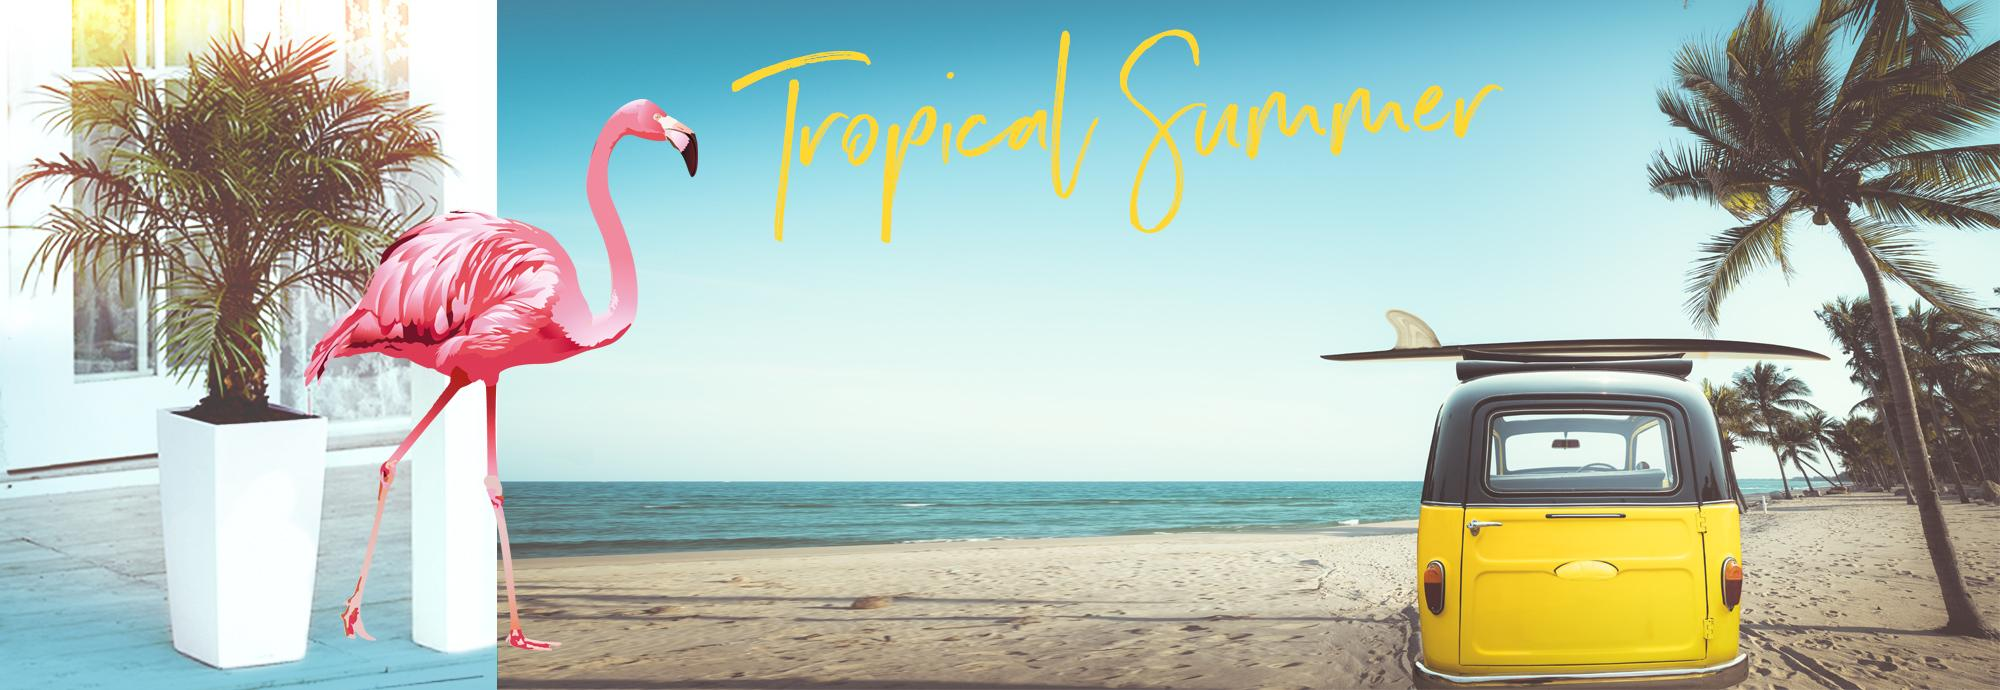 hero_banner_cubico_color_tropical